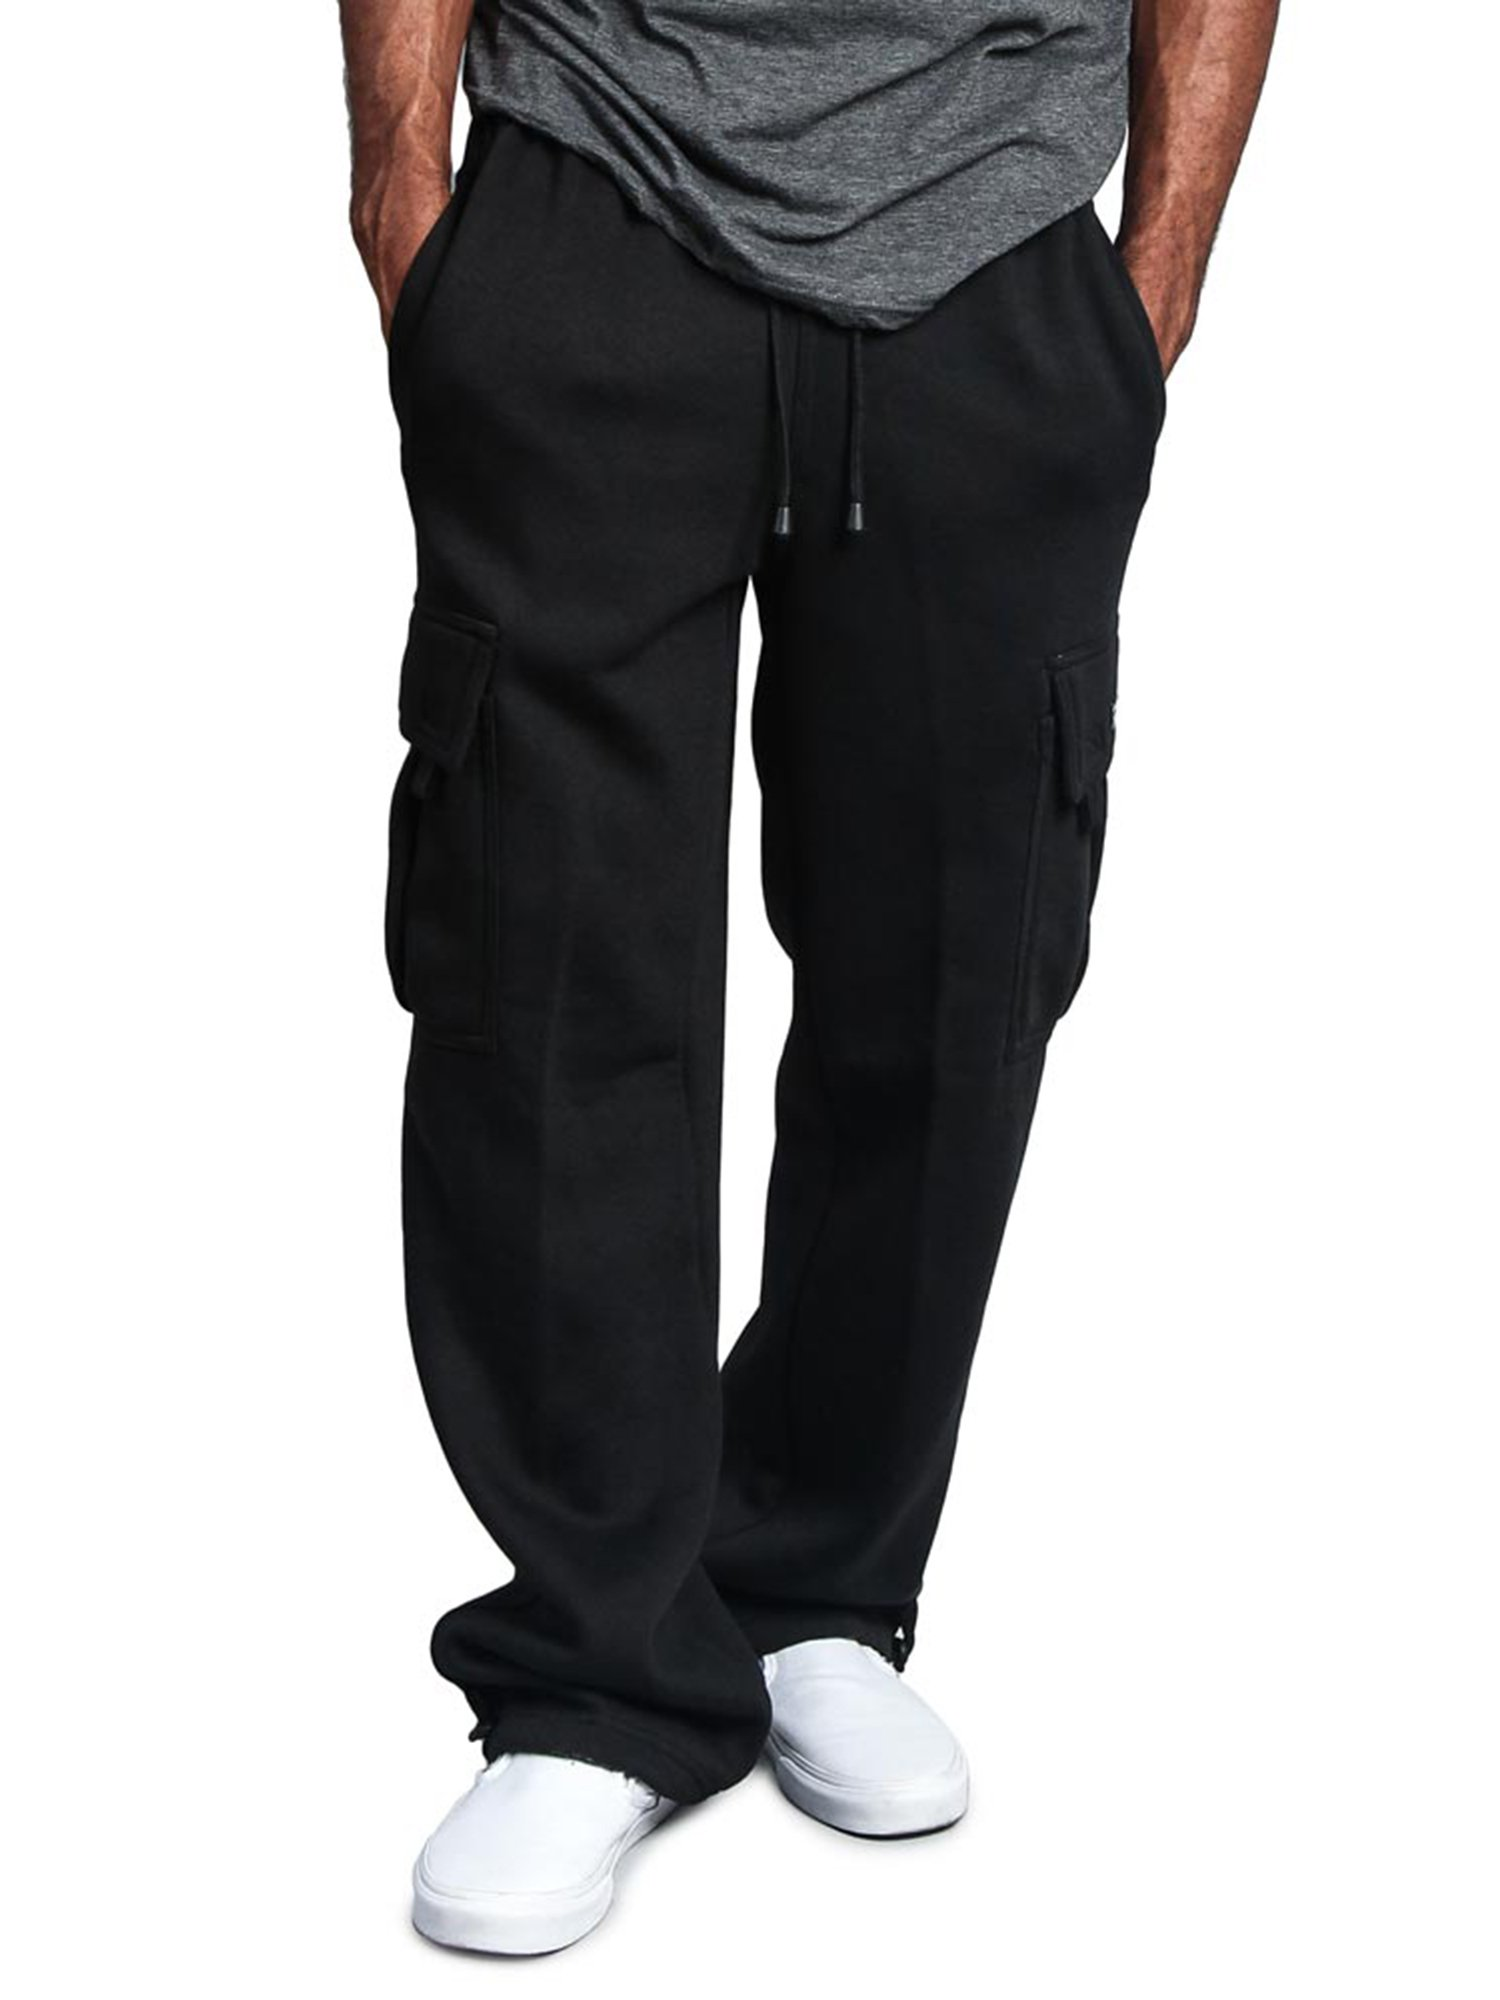 G-Style USA Men/'s Jogger Heavy Weight Fleece Cargo Pocket Sweat Pants US STOCK